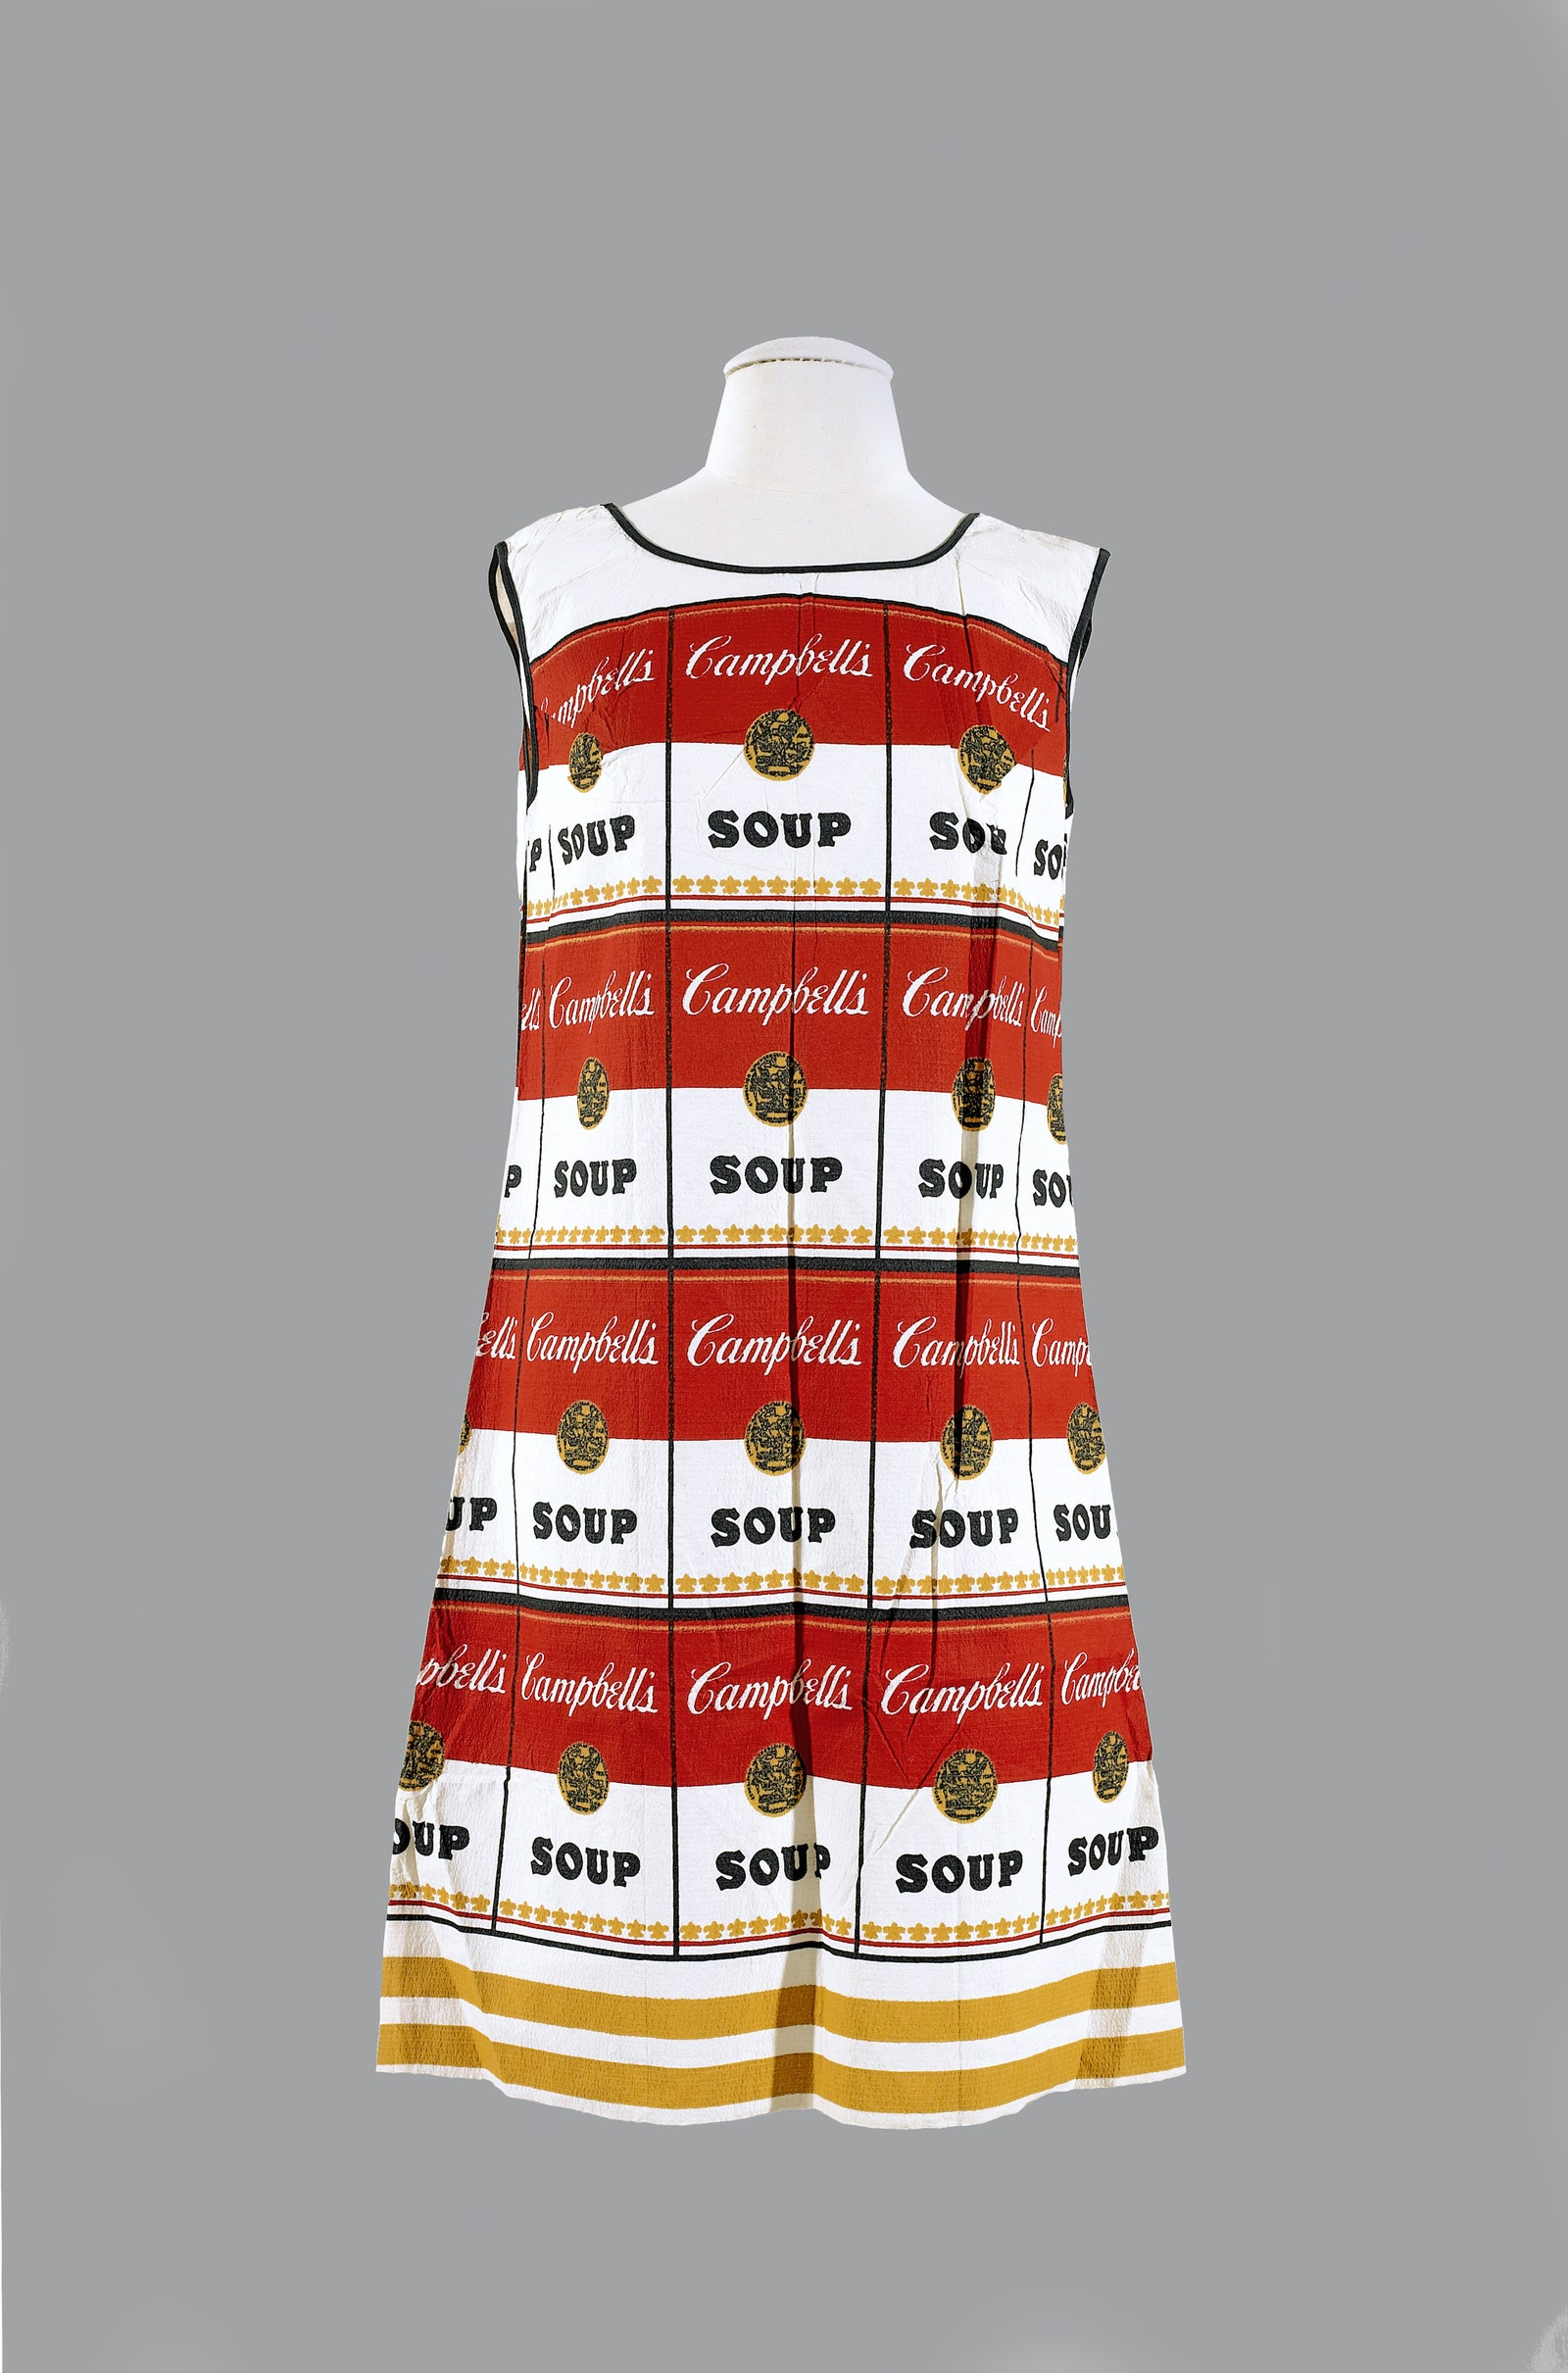 Campbells. All Andy Warhol artwork  2018 The Andy Warhol Foundation for the Visual Arts